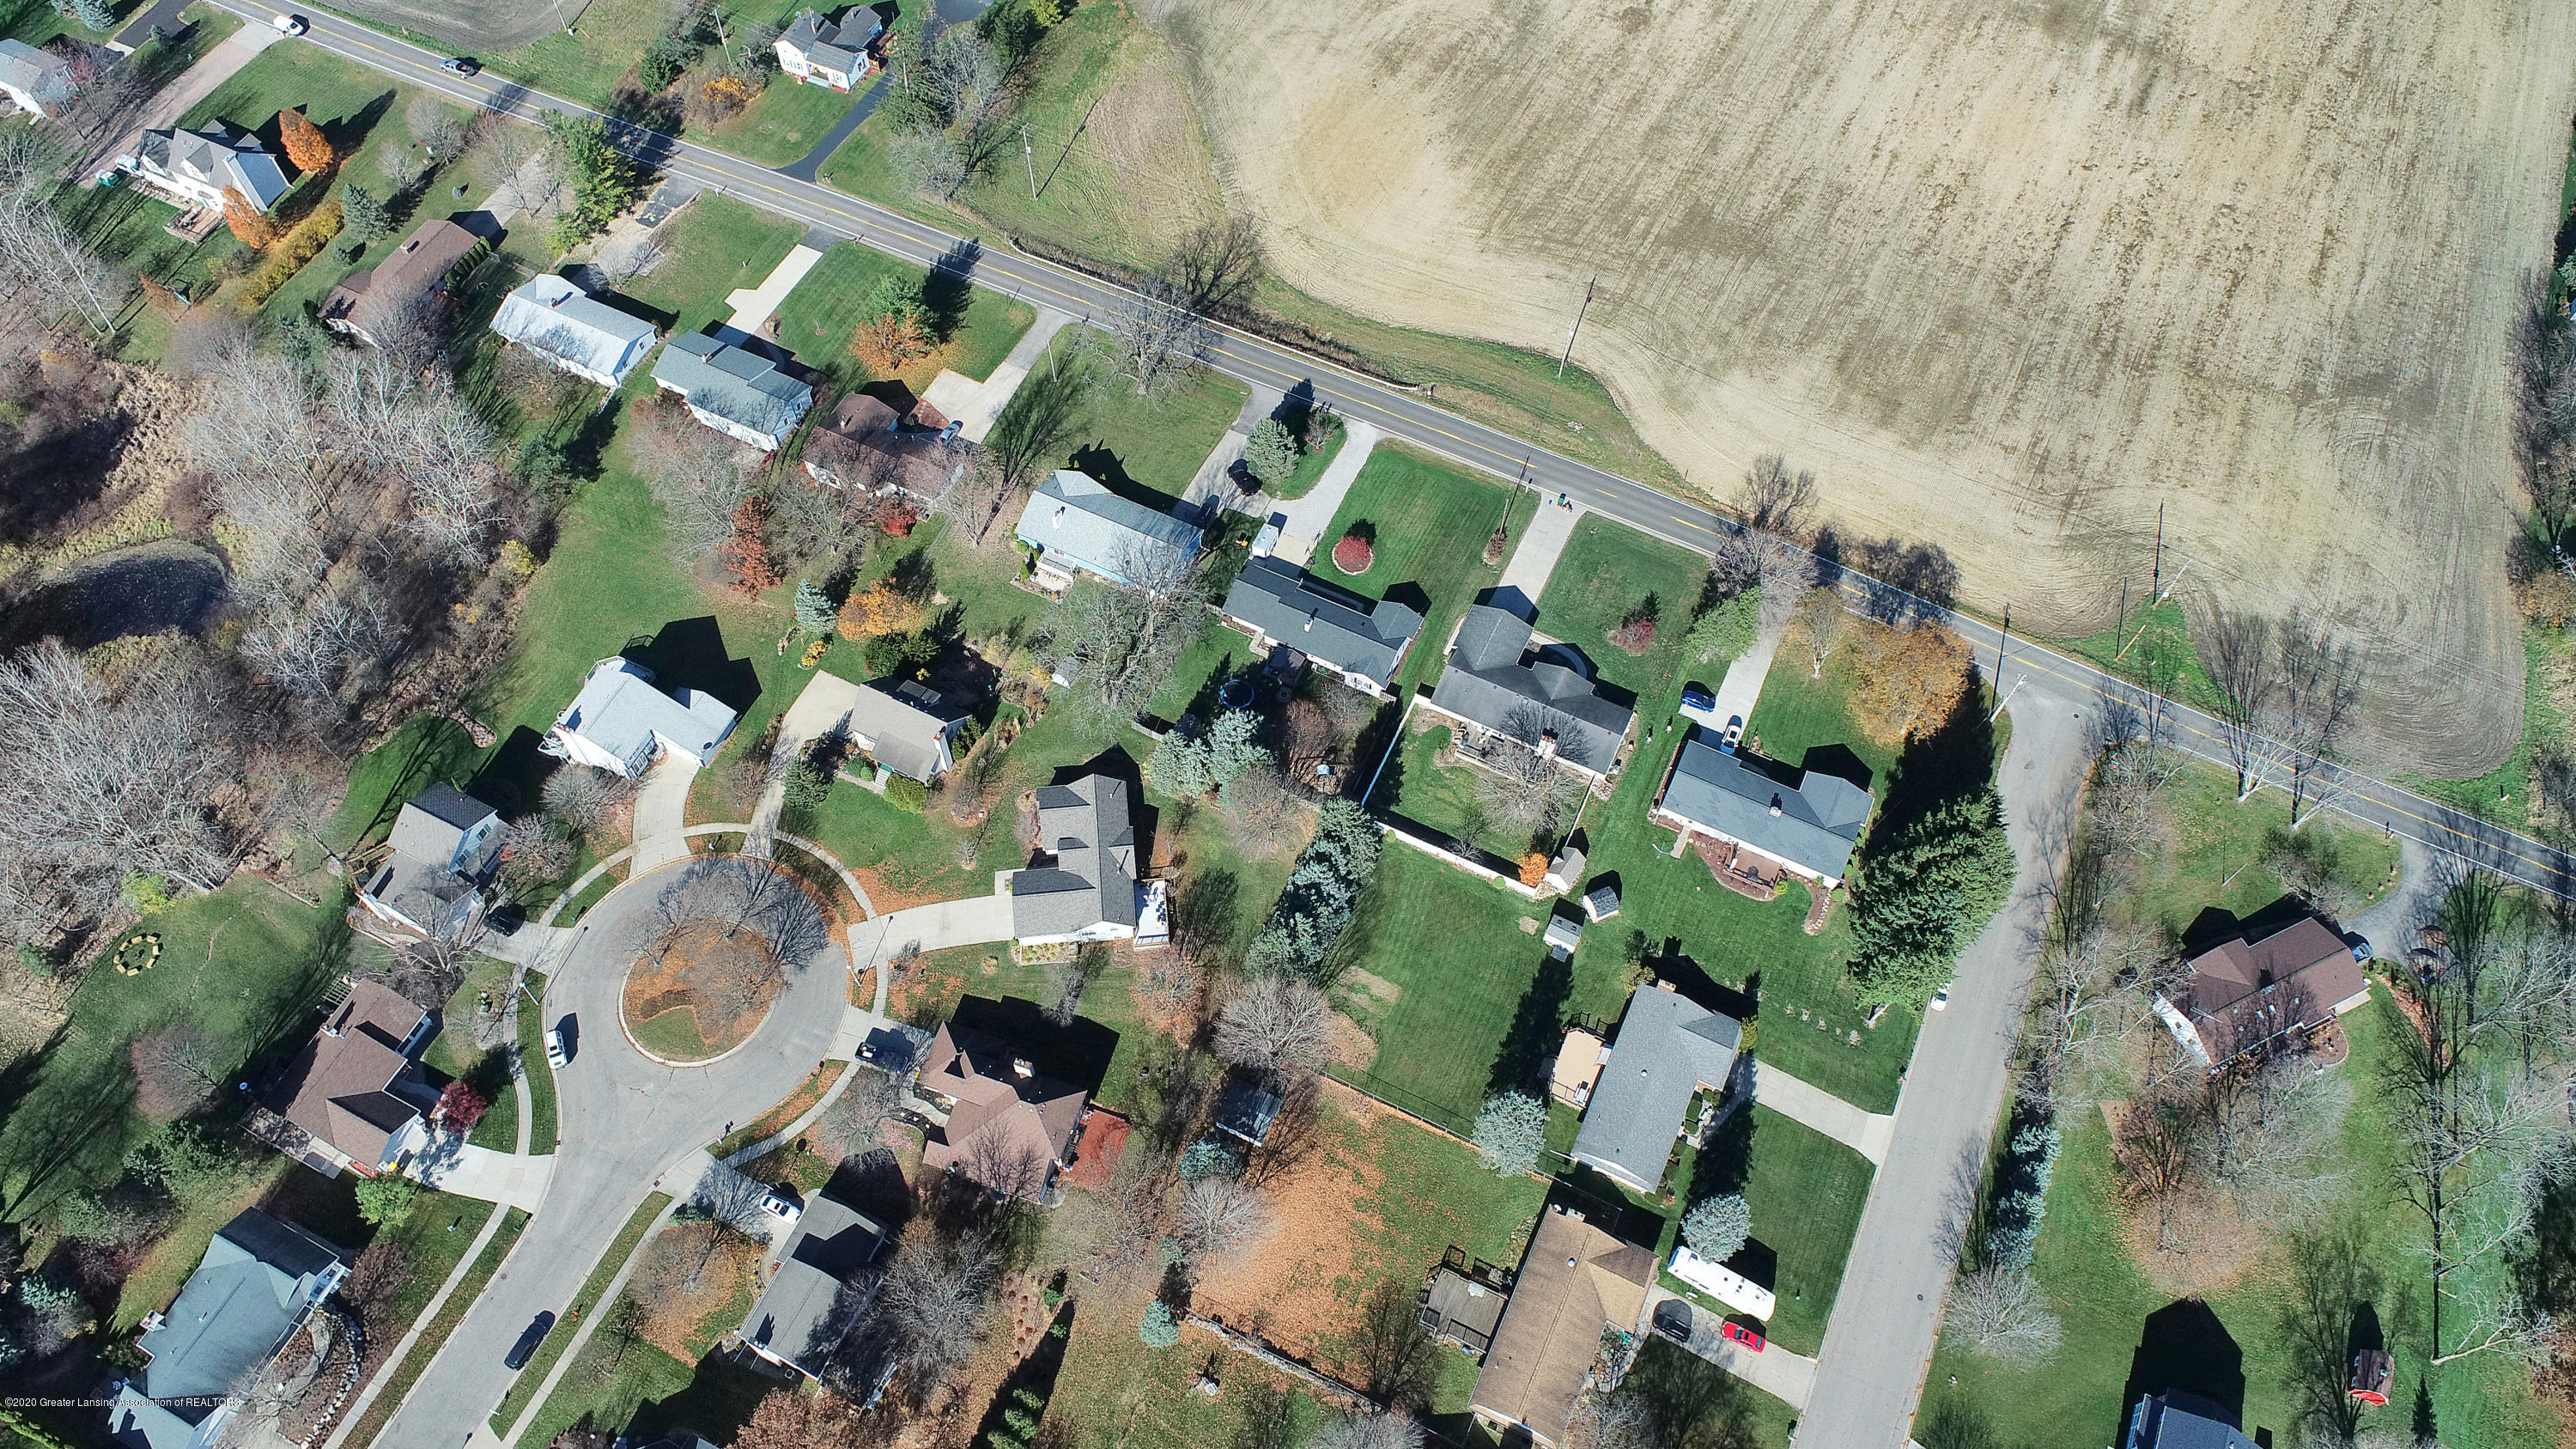 3801 E Willoughby Rd - DJI_0332 - 54